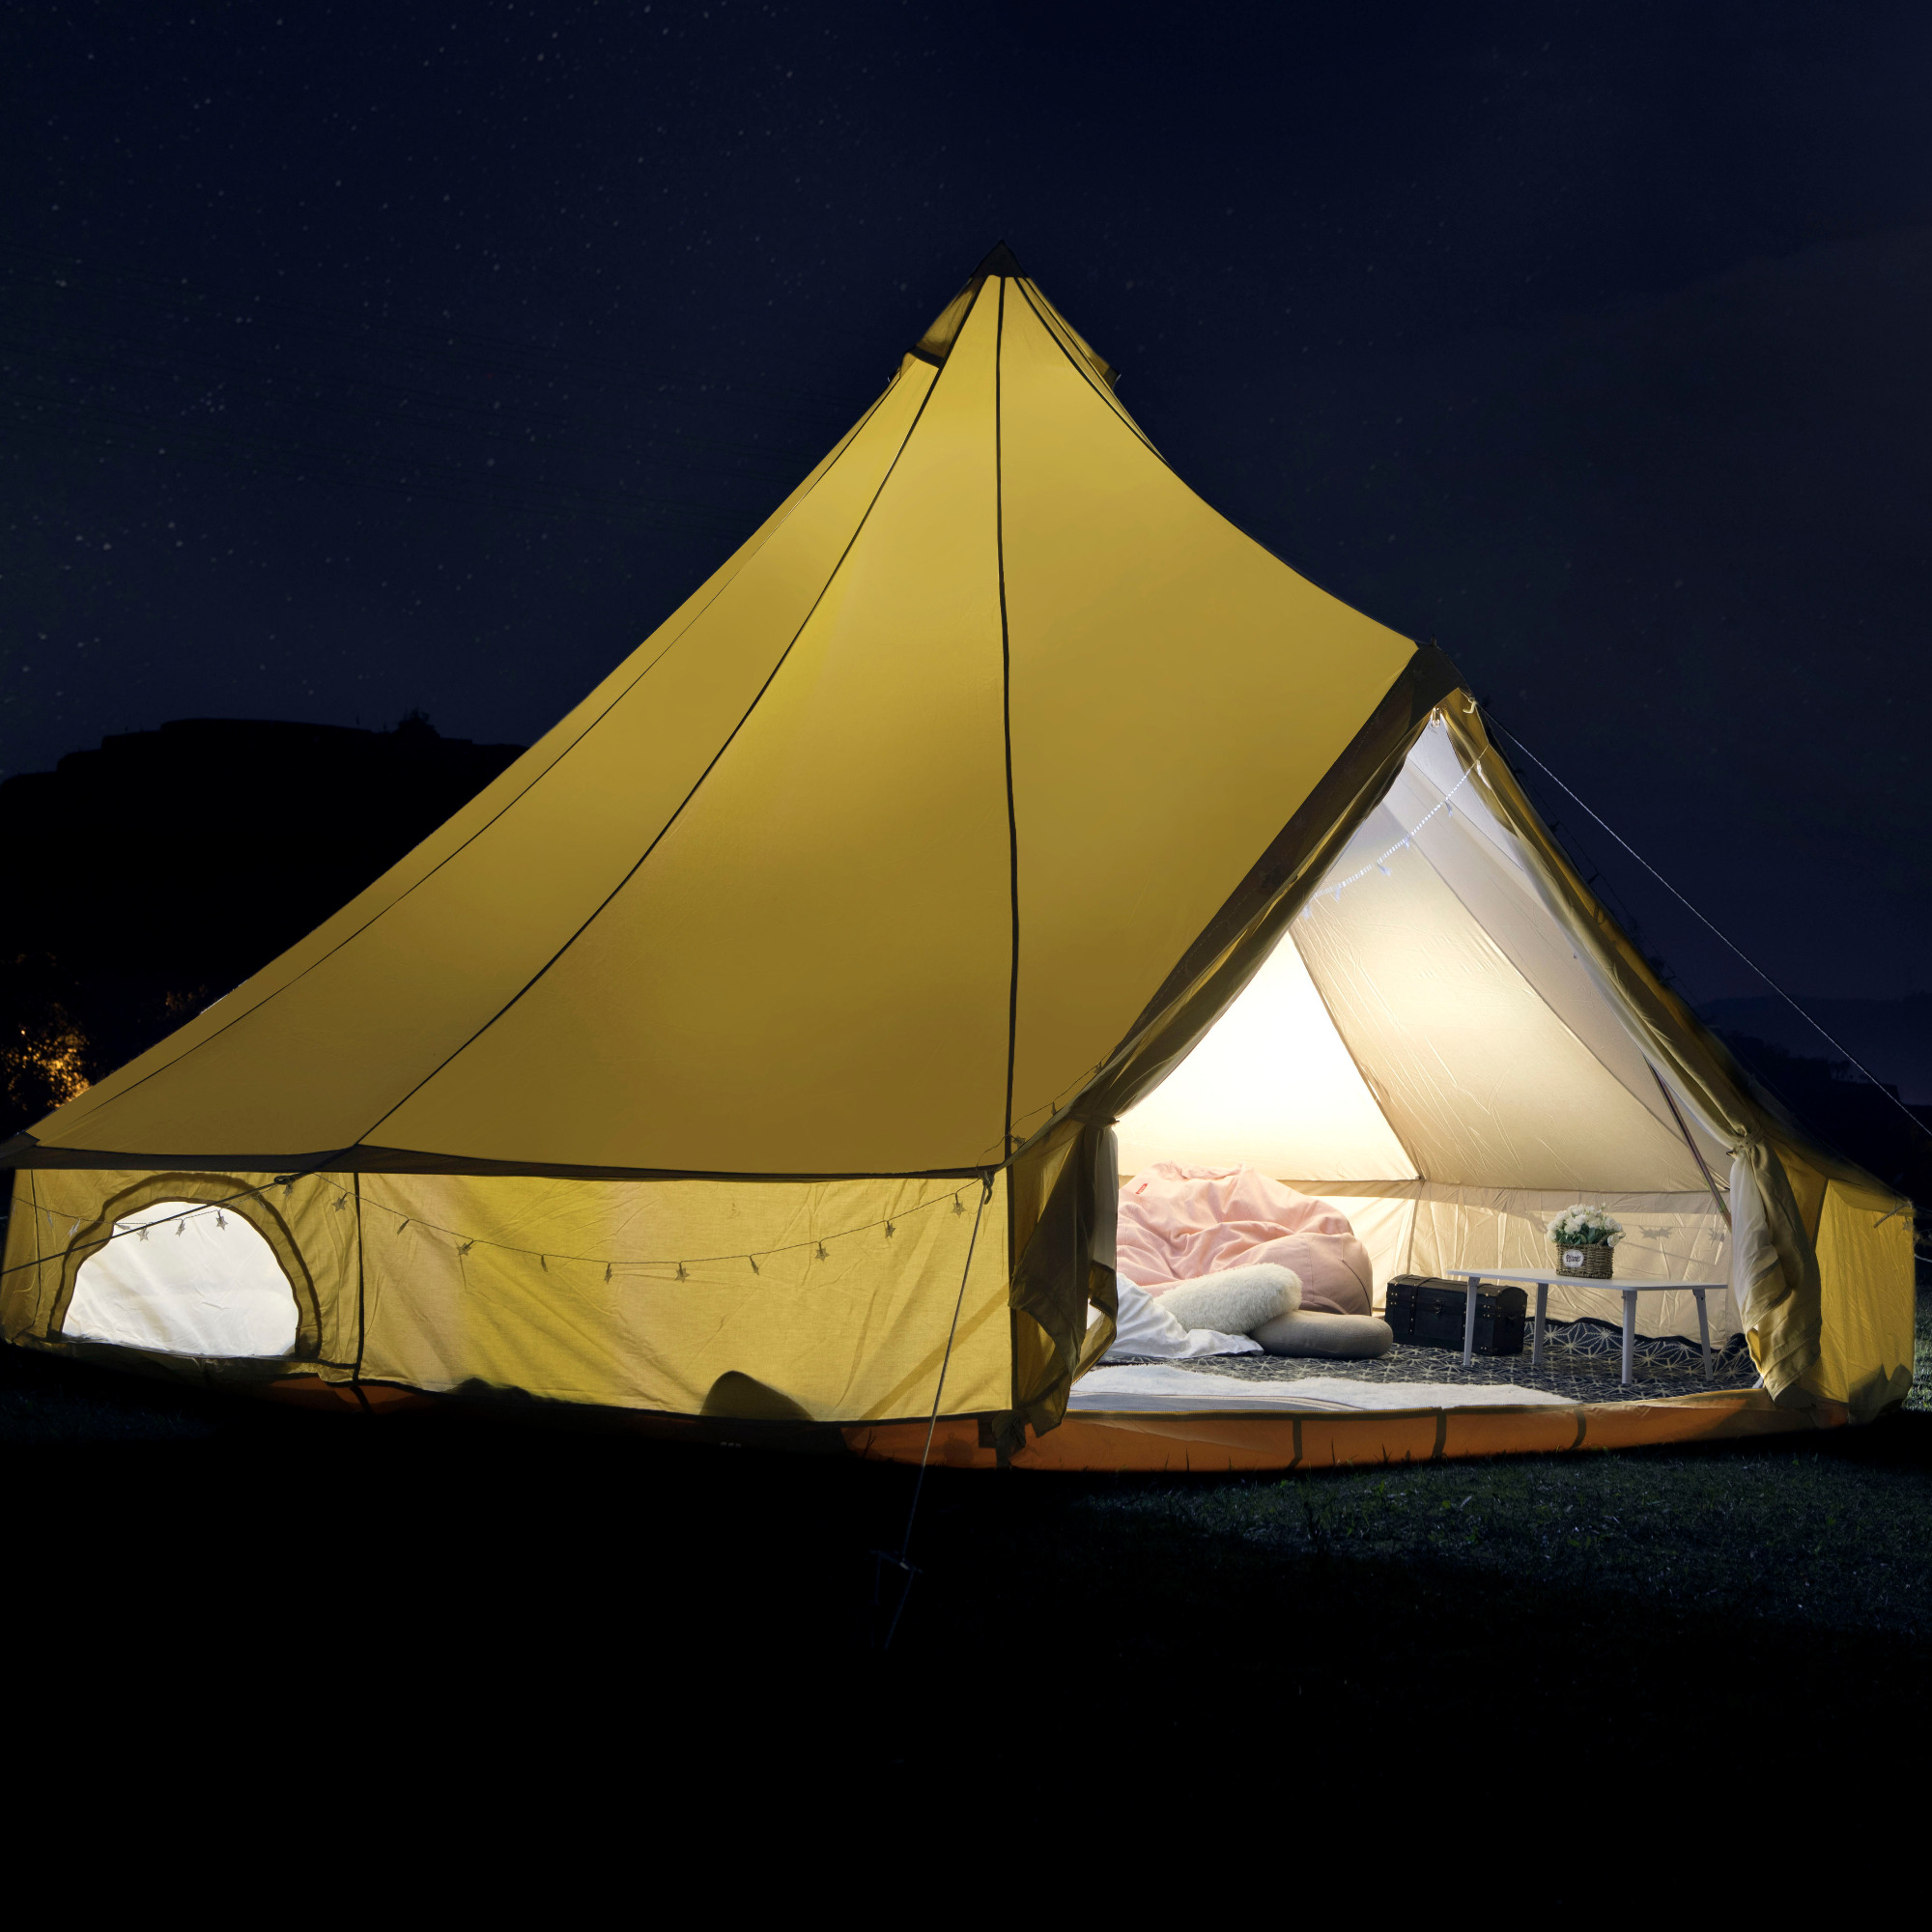 TENTS BY MATERIAL